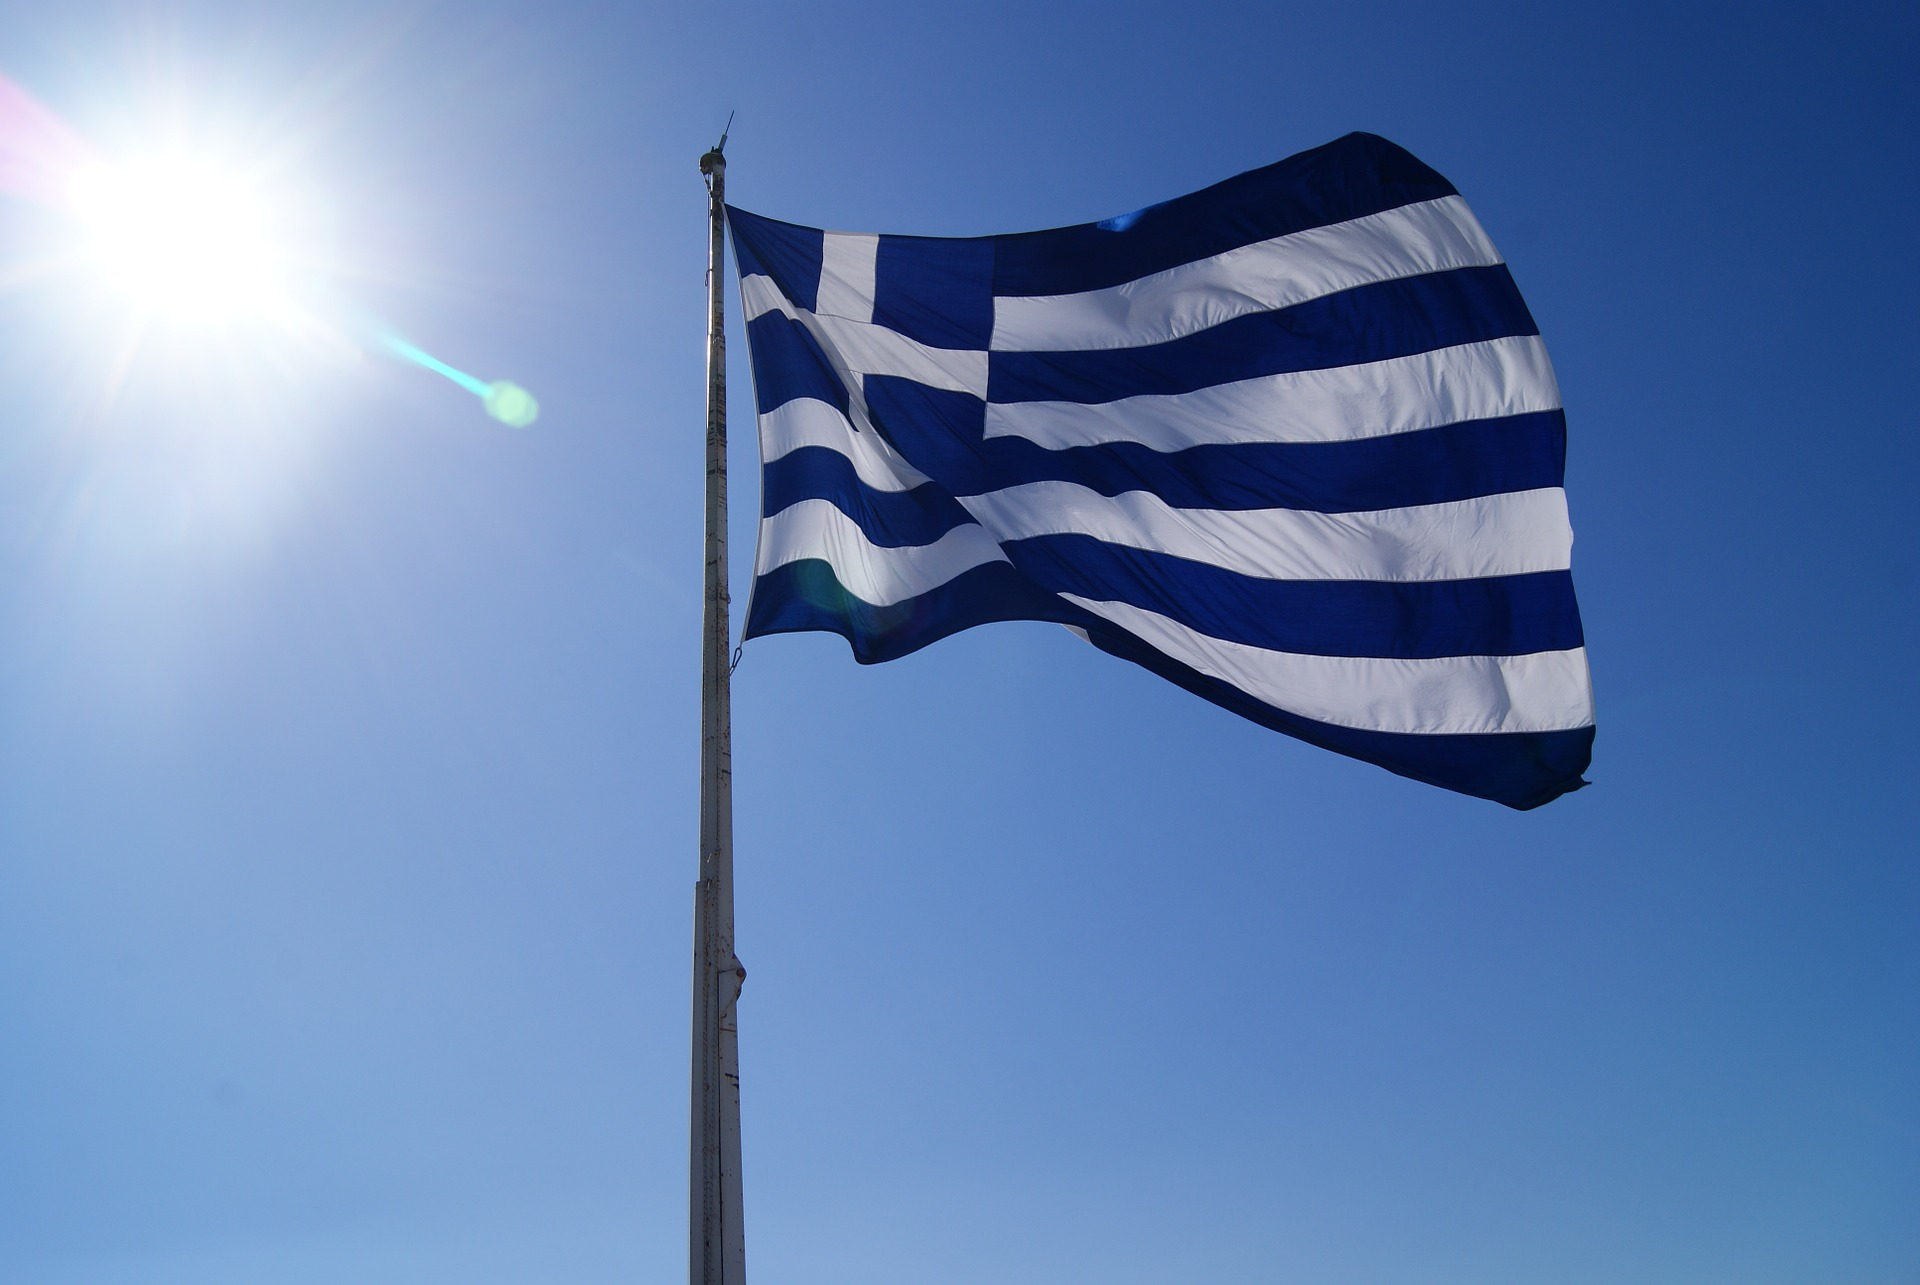 To Grexit or not to Grexit?